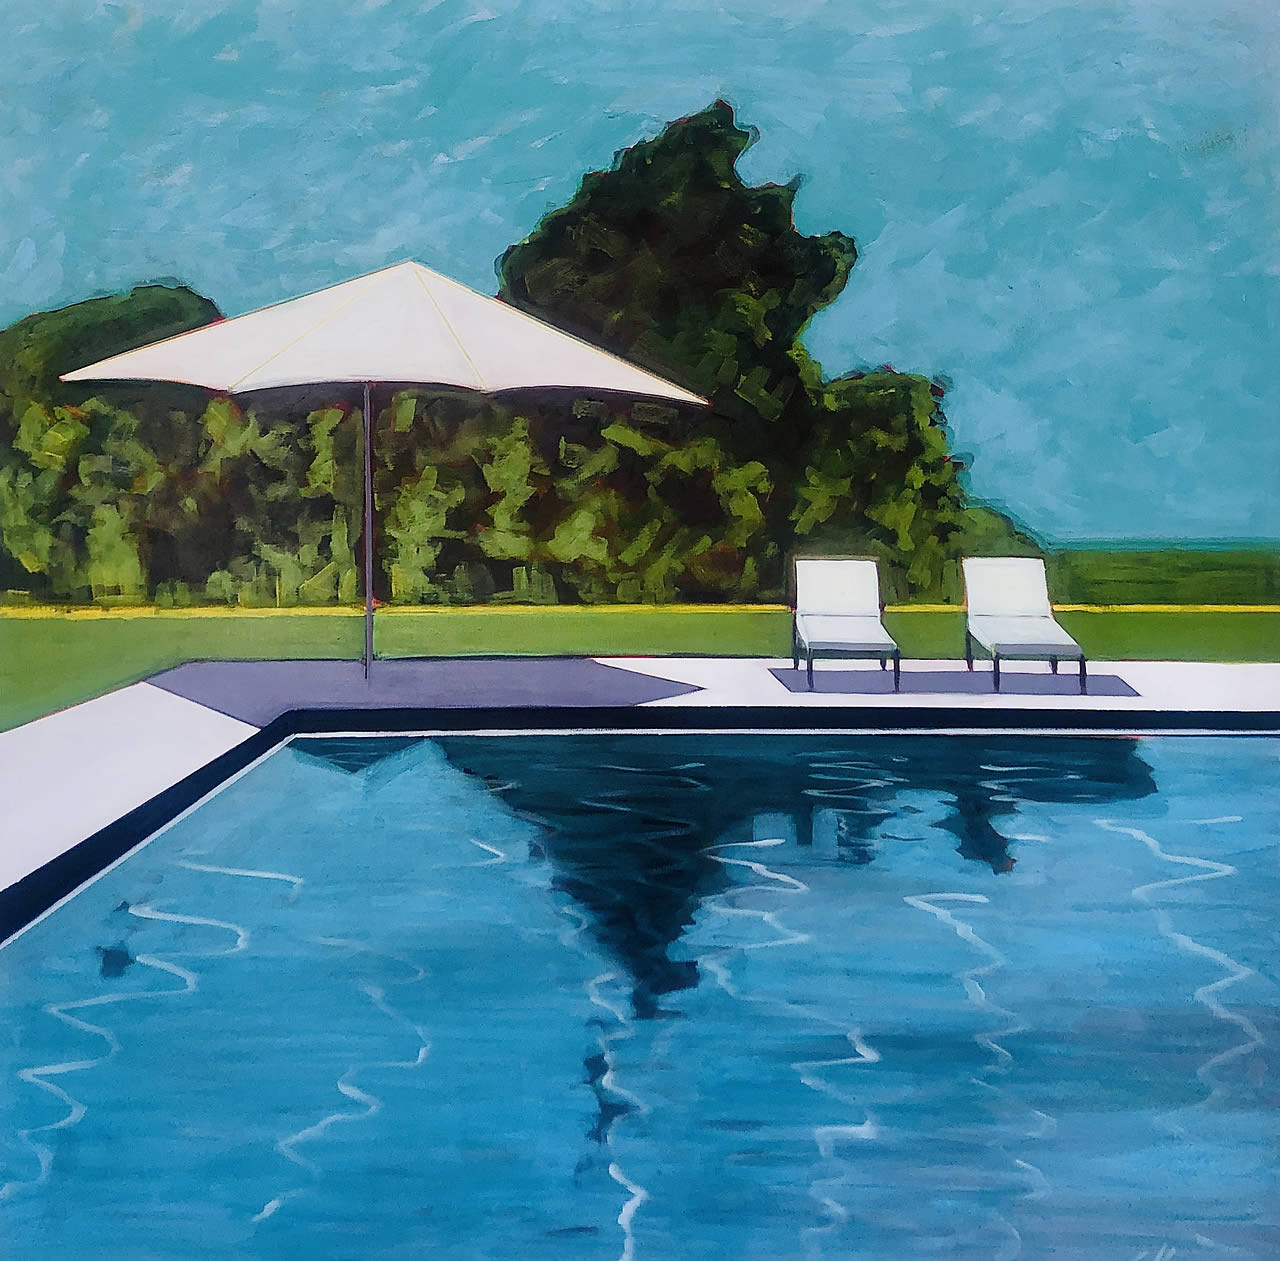 Backyard Pool with Umbrella and Two Chairs